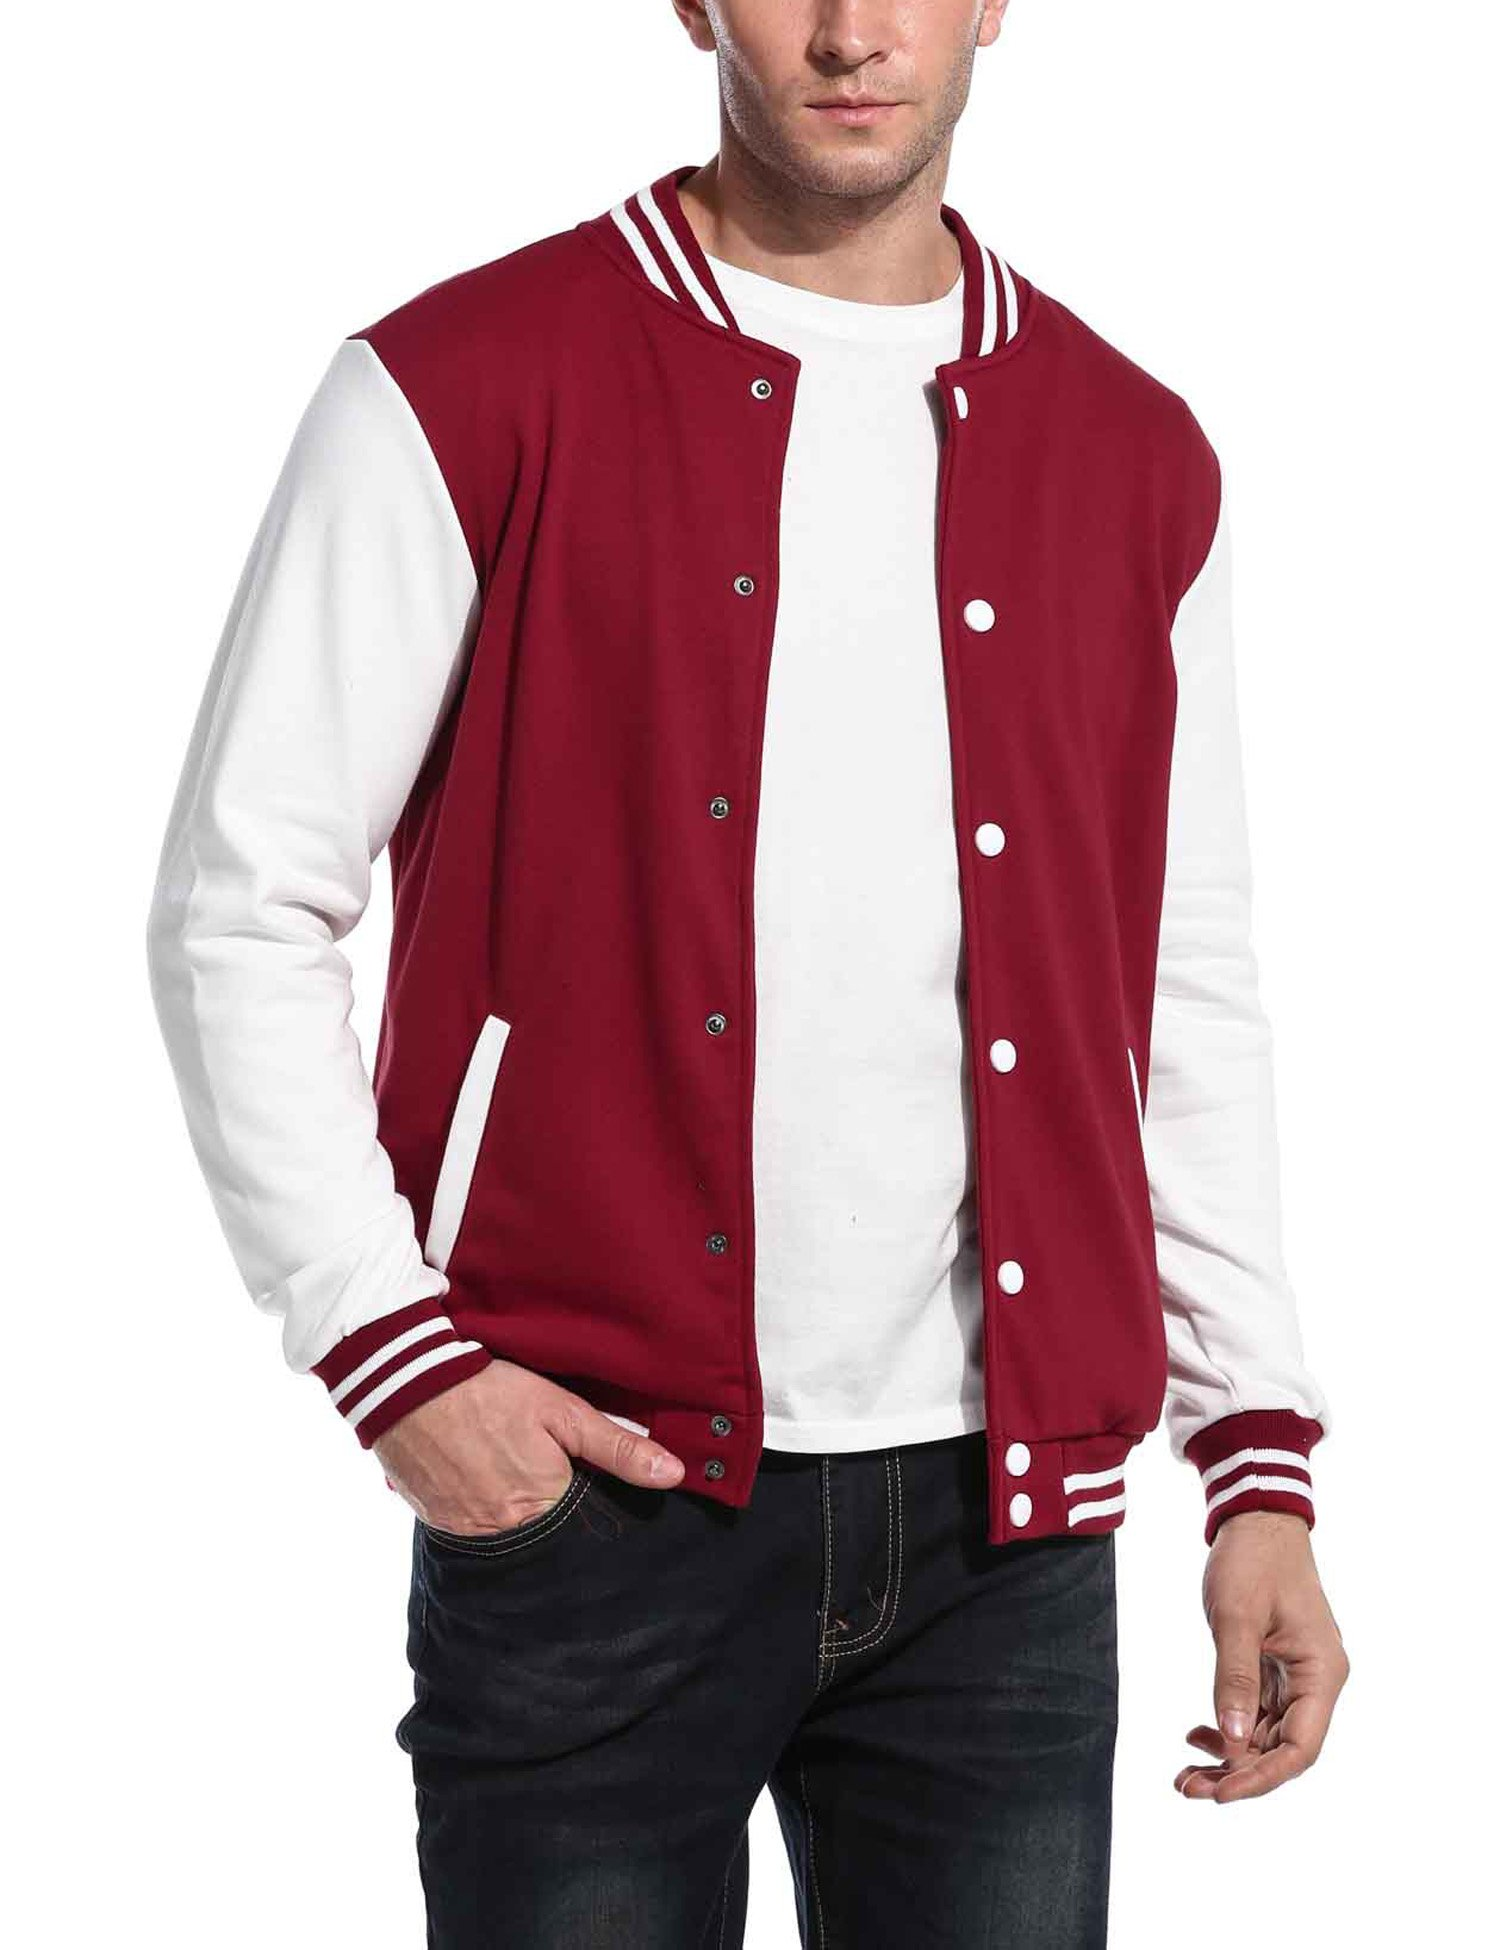 COOFANDY Men Fashion Long Sleeve Button Front Cotton Bomber Baseball Jacket(Red,Large) by COOFANDY